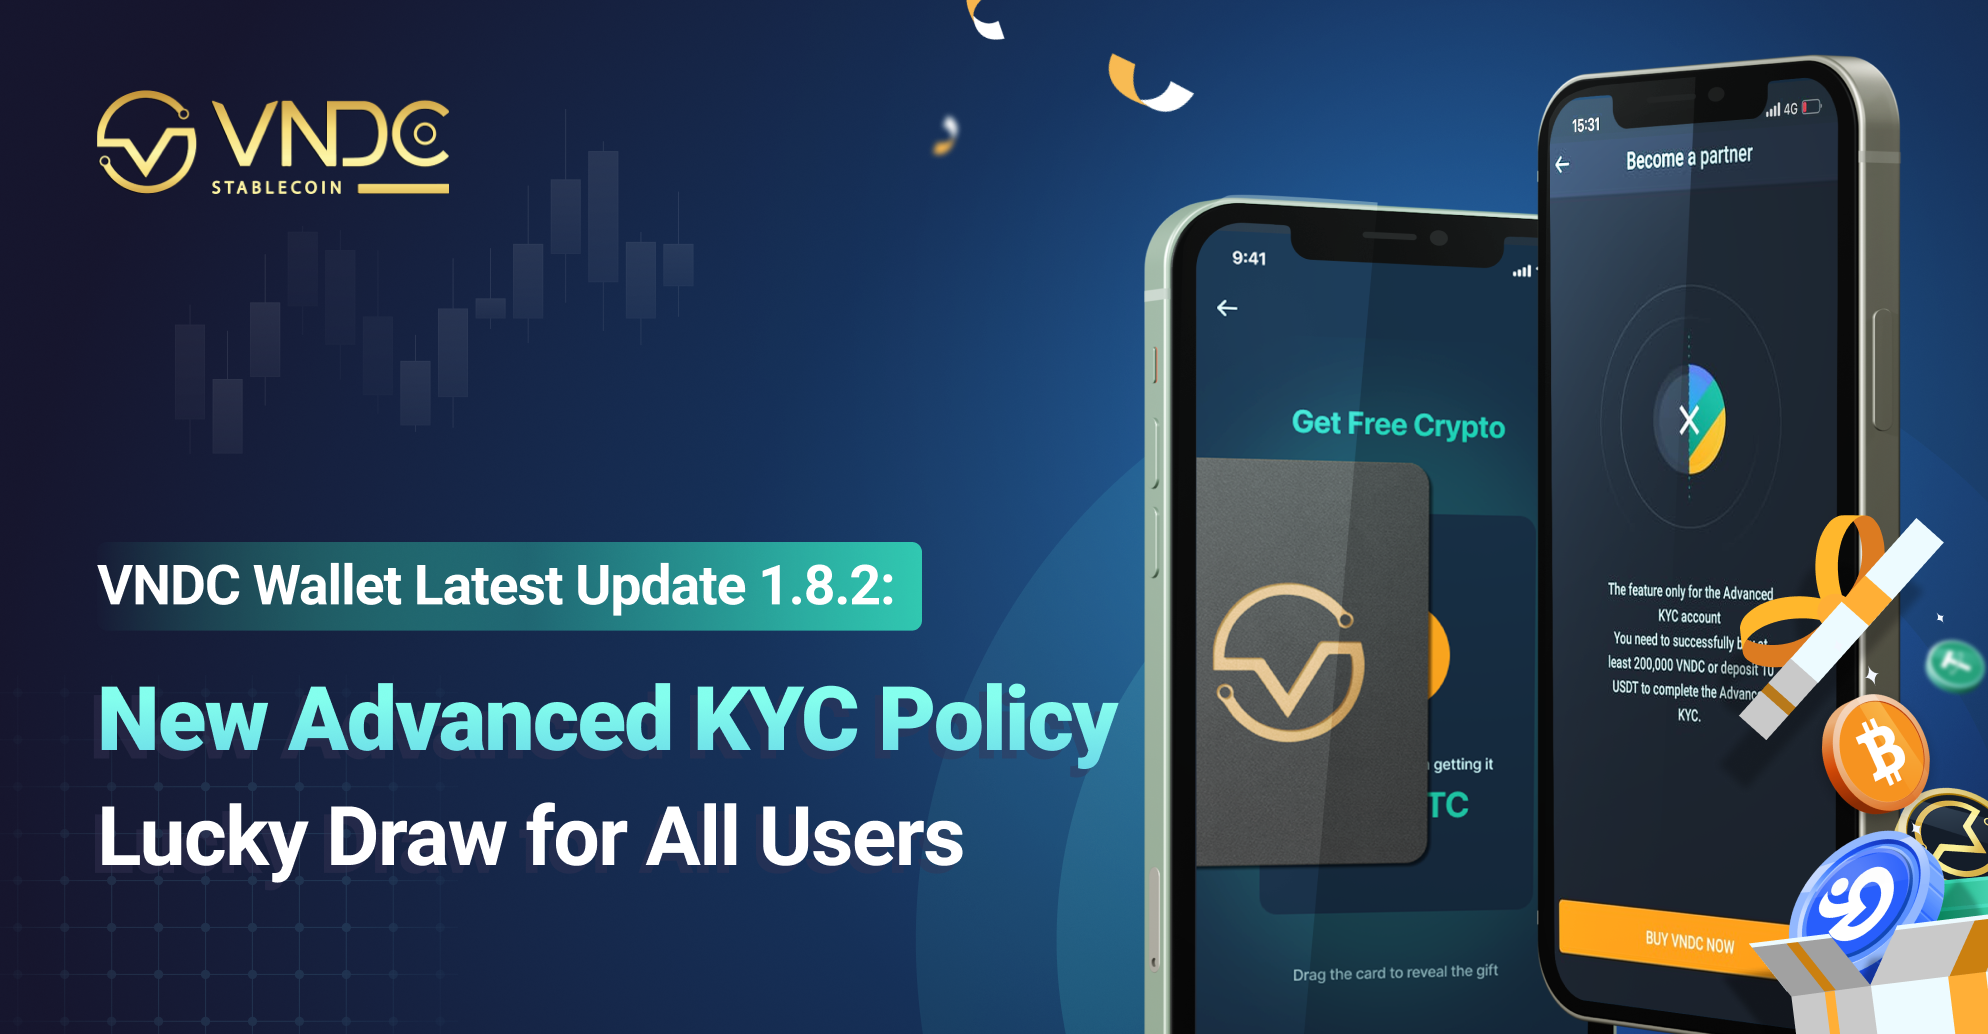 Latest Update 1.8.2: New Advanced KYC Policy, Lucky Draw for All Users